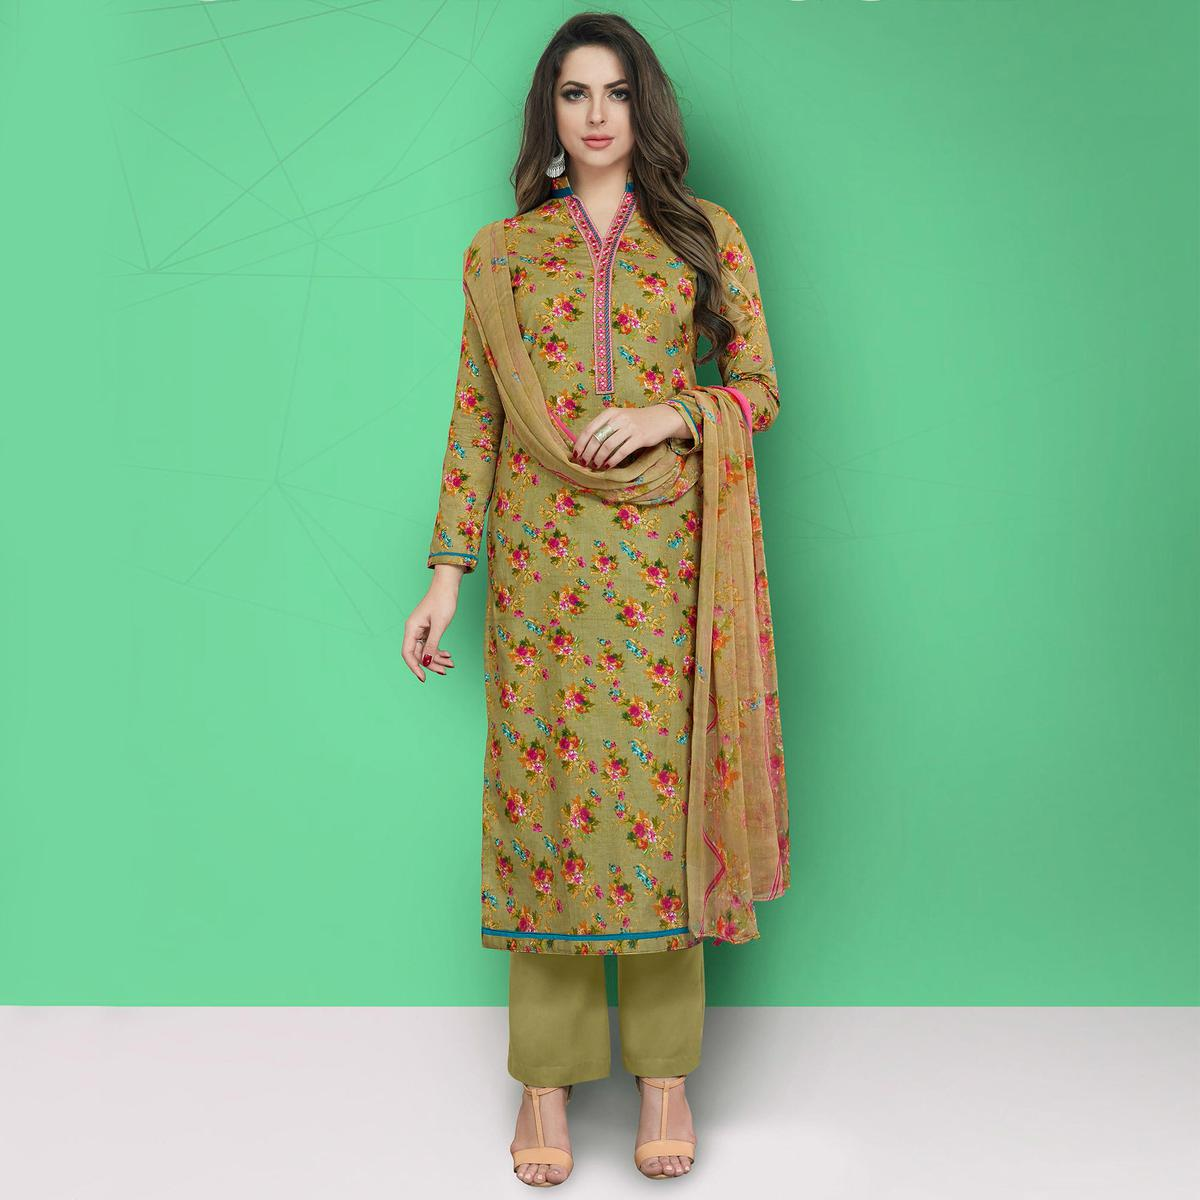 Blooming Olive Green Colored Casual Printed Cotton Suit